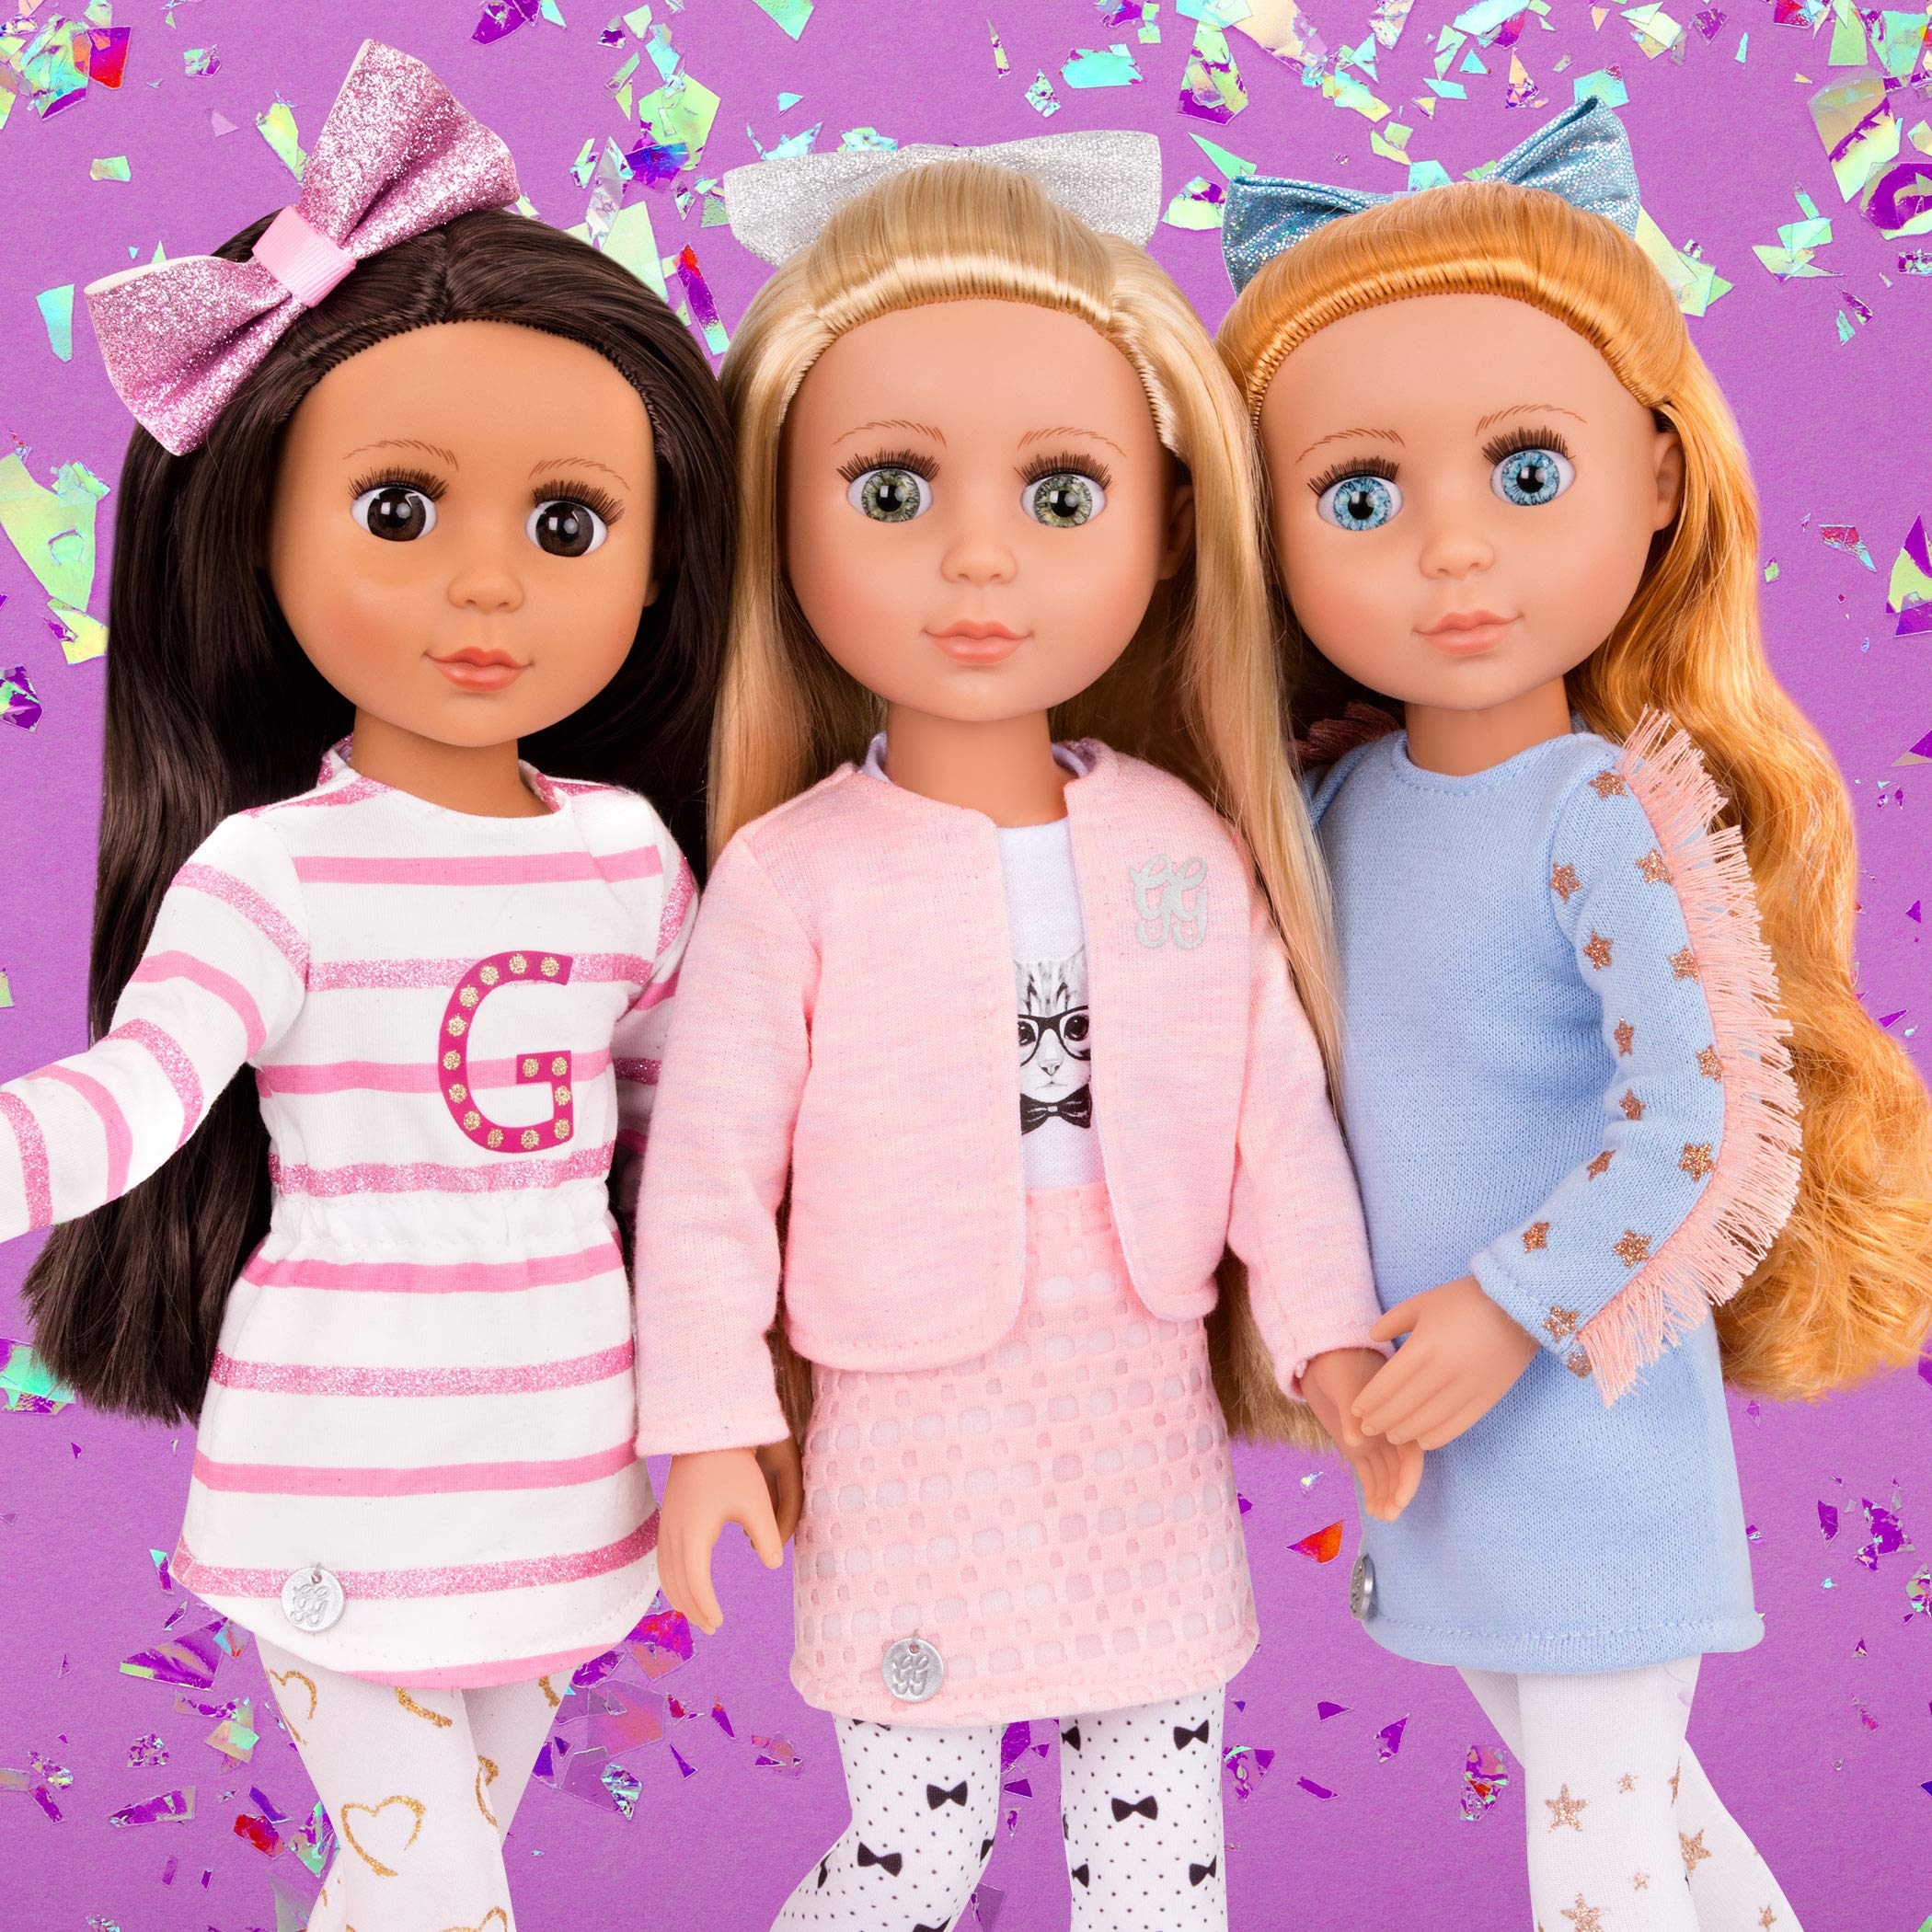 Glitter Girls Dolls by Battat - Fifer 36cm Fashion Doll – Toys, Clothes and Accessories For Girls 3-Year-Old and Up